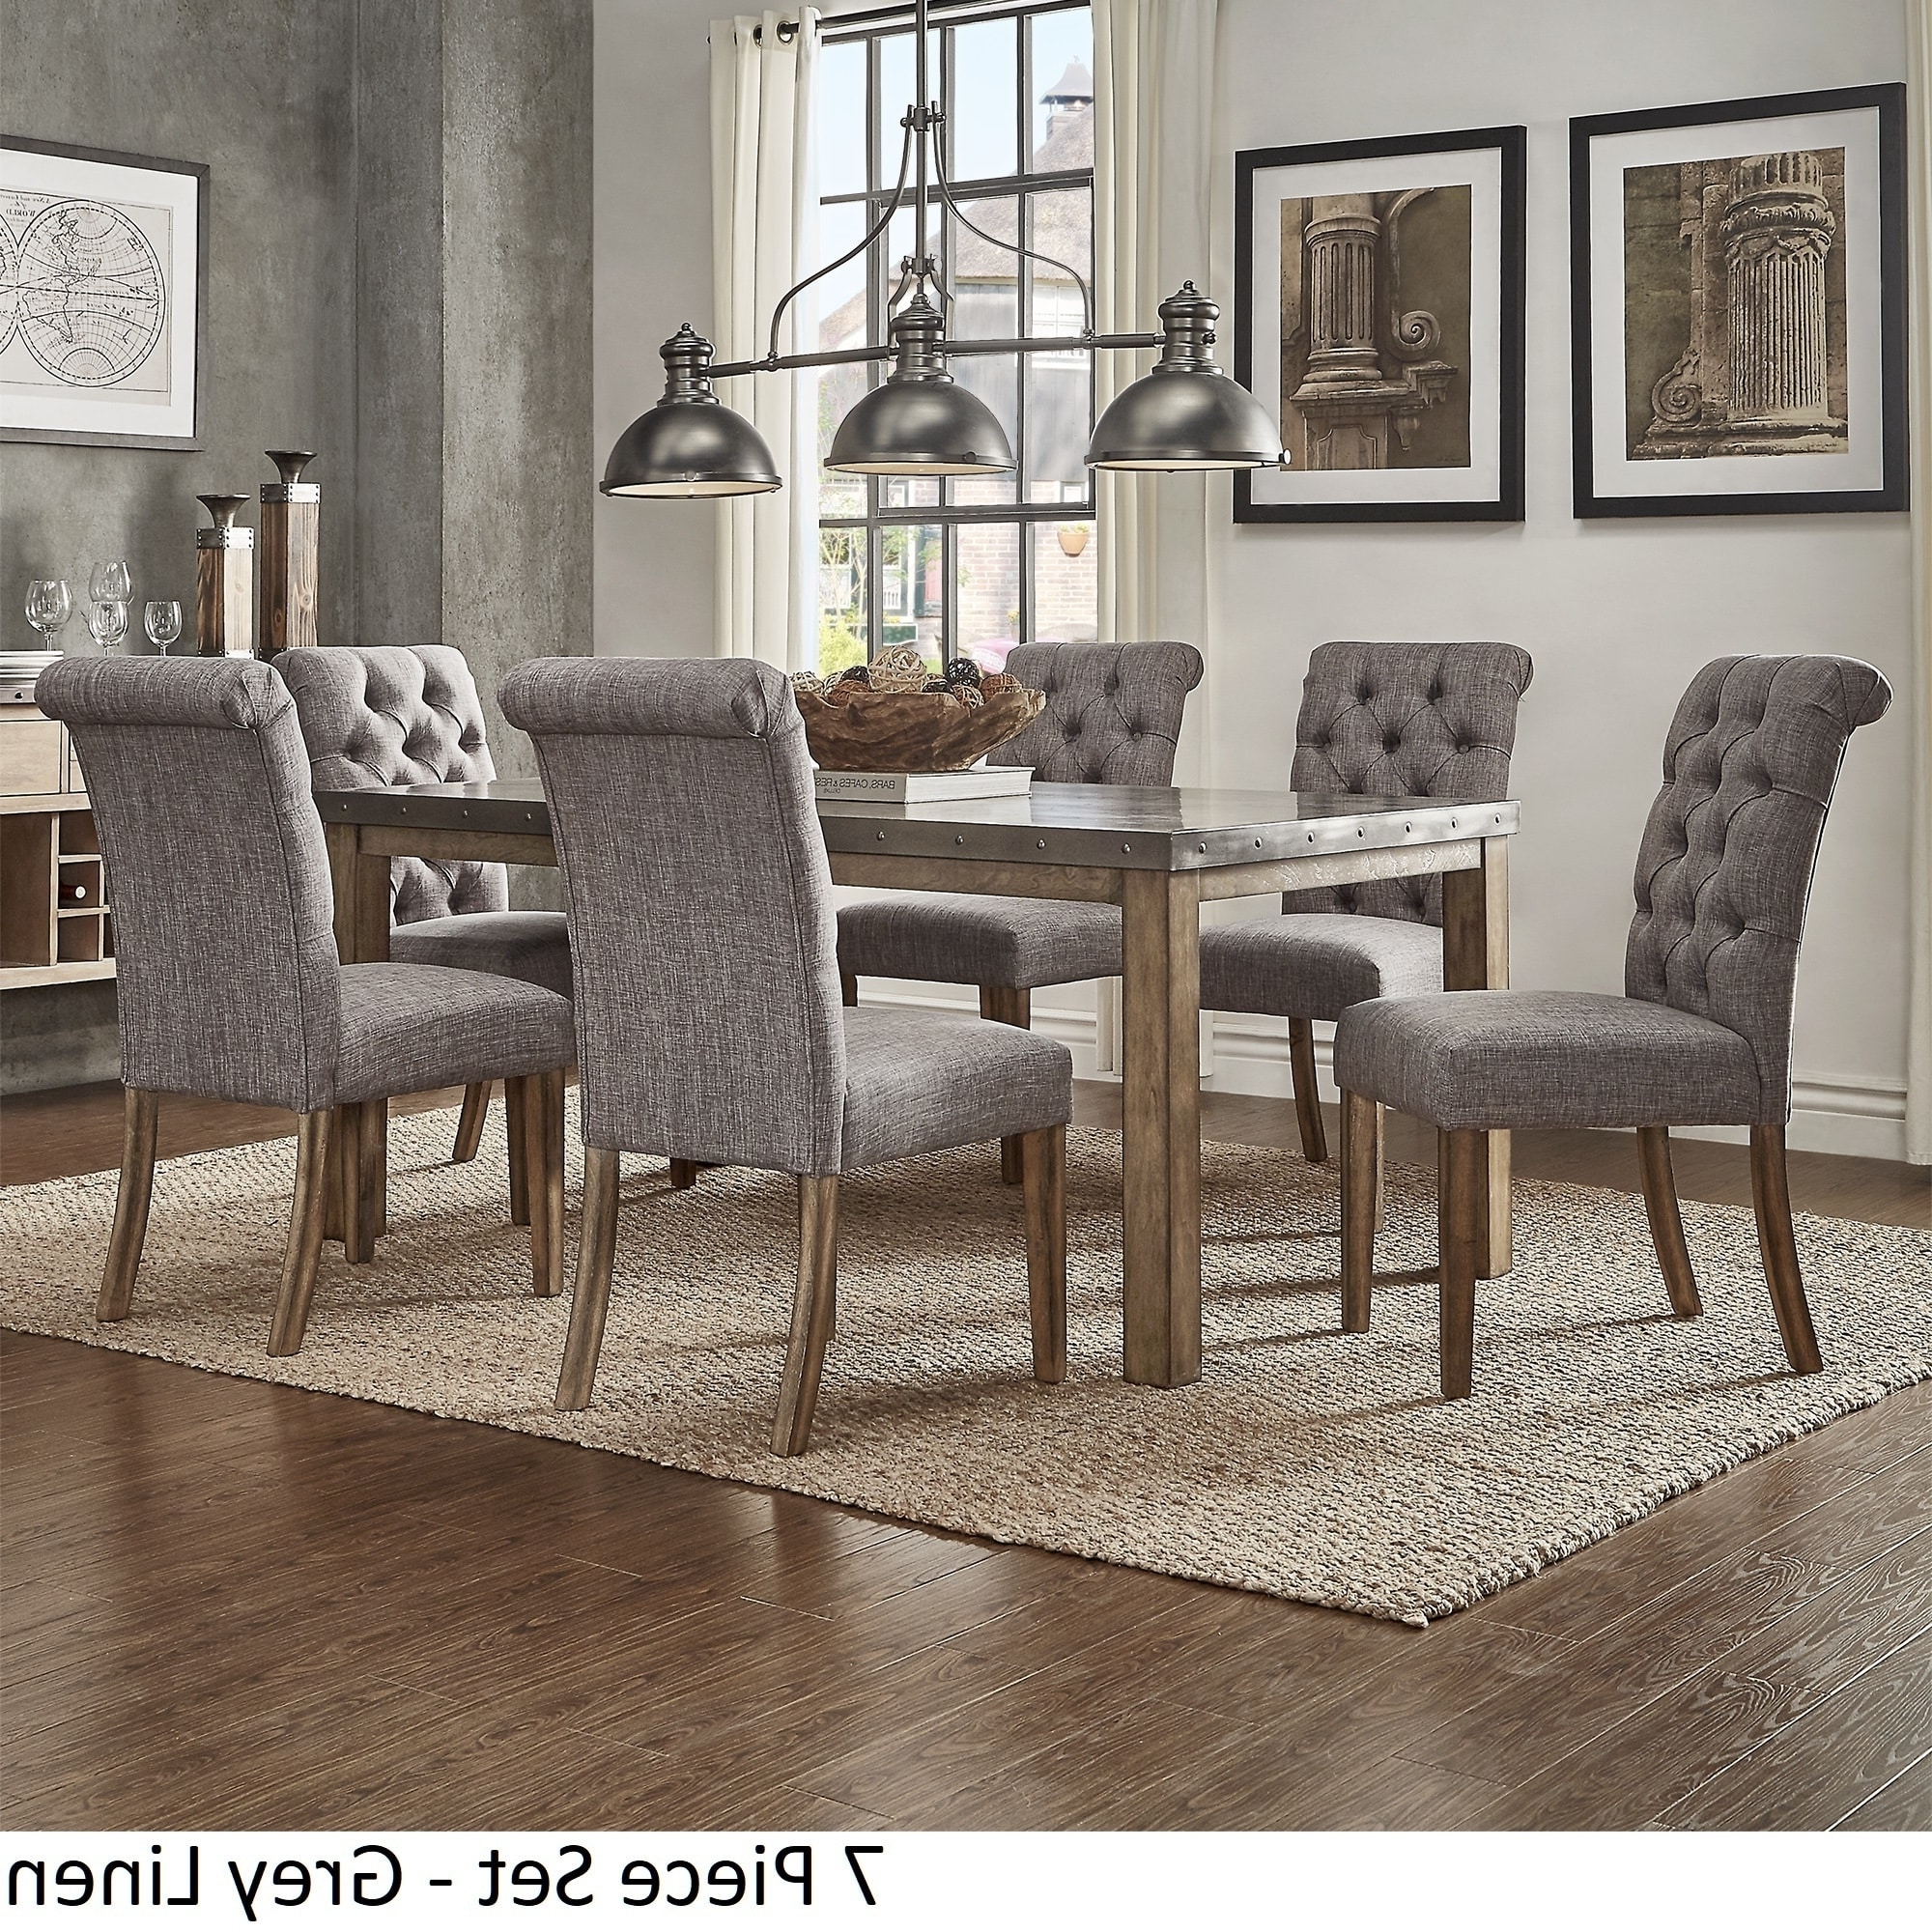 Cassidy Stainless Steel Top Rectangle Dining Table Setinspire Q Regarding Well Known Crawford 6 Piece Rectangle Dining Sets (Gallery 22 of 25)